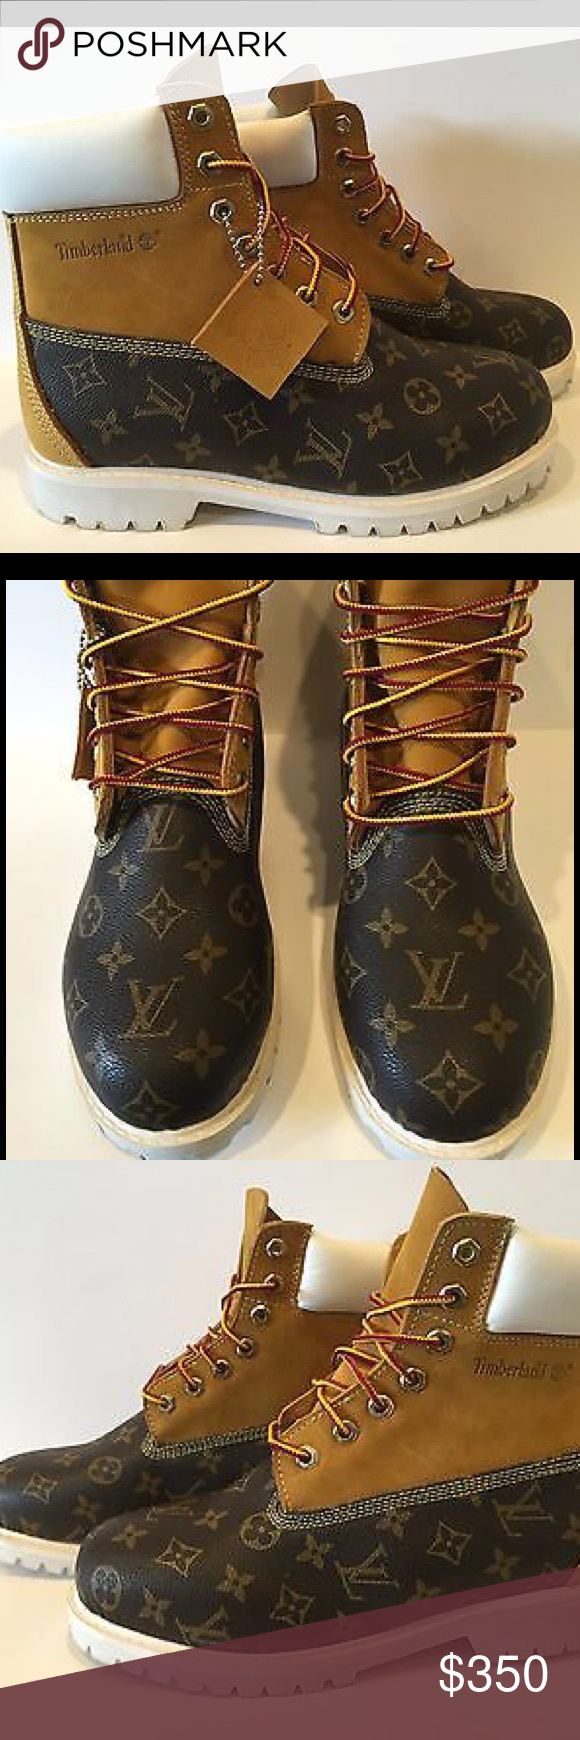 dd68761fb7 Custom Louis Vuitton Timberland Boots Available in all sizes. Limited  supply email me for more pictures and info at chitownkustoms22@gmail.com Louis  Vuitton ...